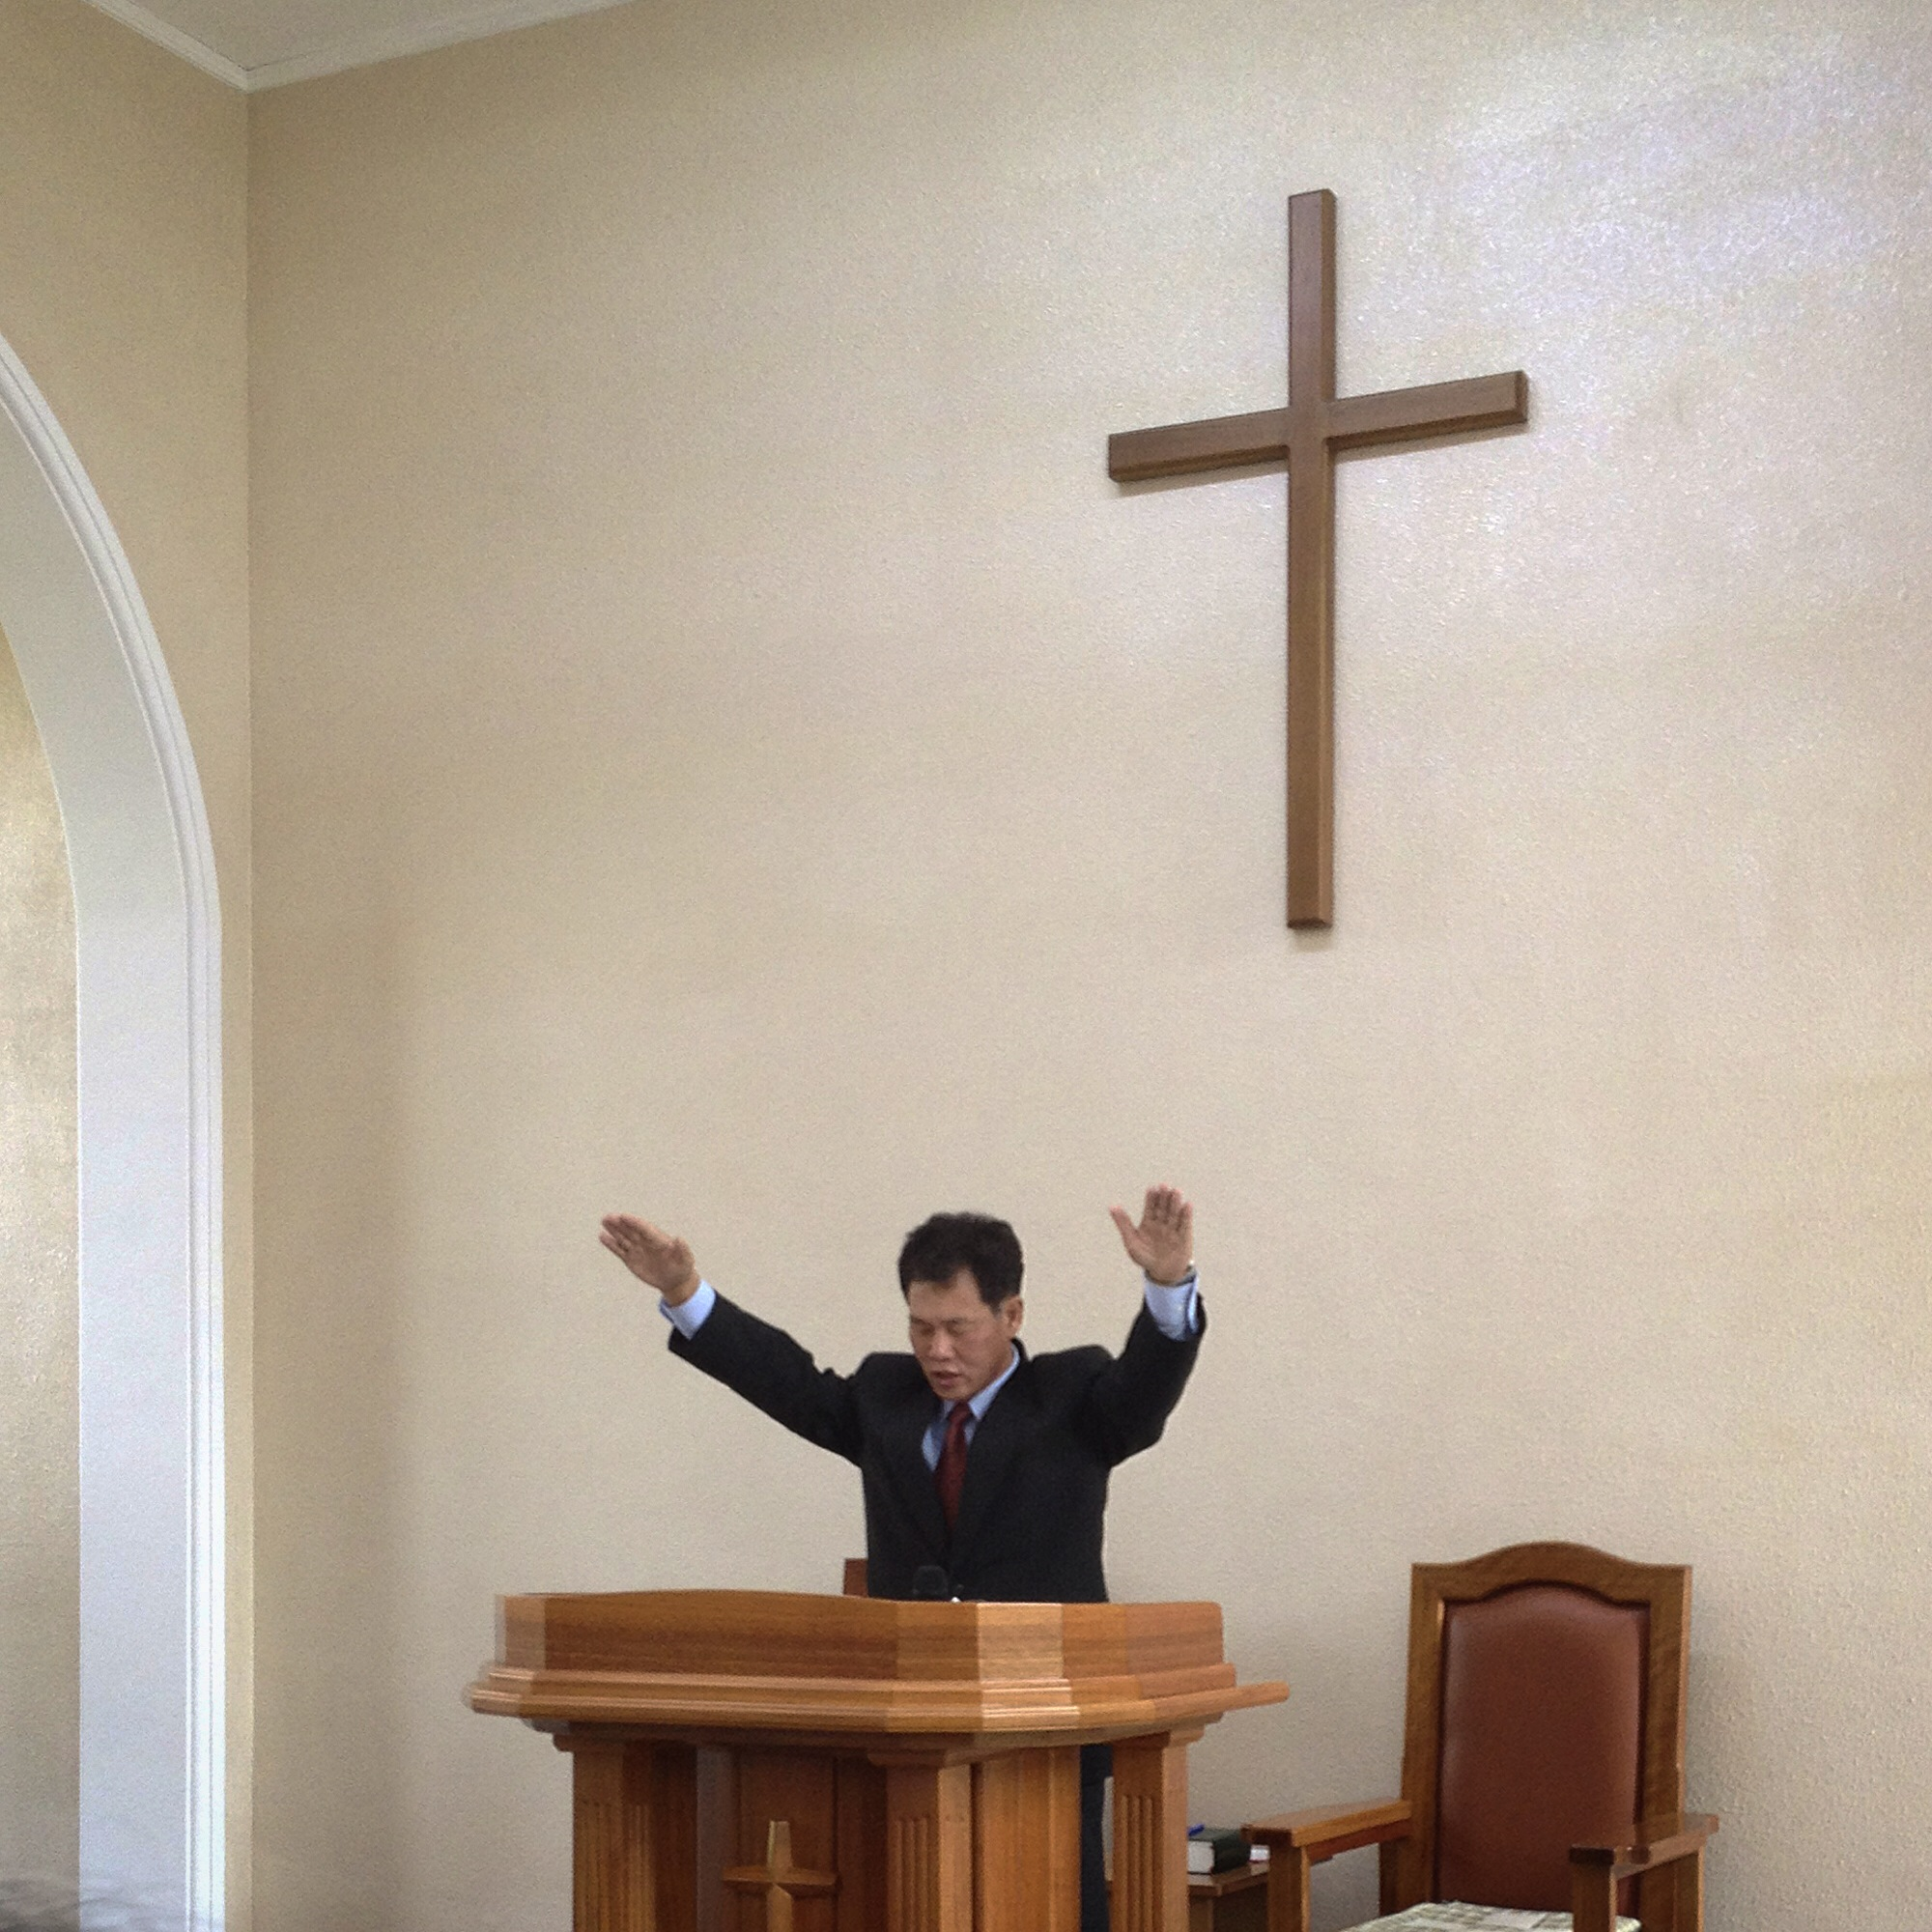 The vicar of the Chilgol Church (the smaller of the two protestant churches in Pyongyang), blesses the congregation at the end of his Sunday sermon. On this occasion there were maybe 20 local worshippers, plus around a dozen member of the choir. The church is located next to the birthplace of Kim Il Sung's mother, who was known to be a churchgoer herself.